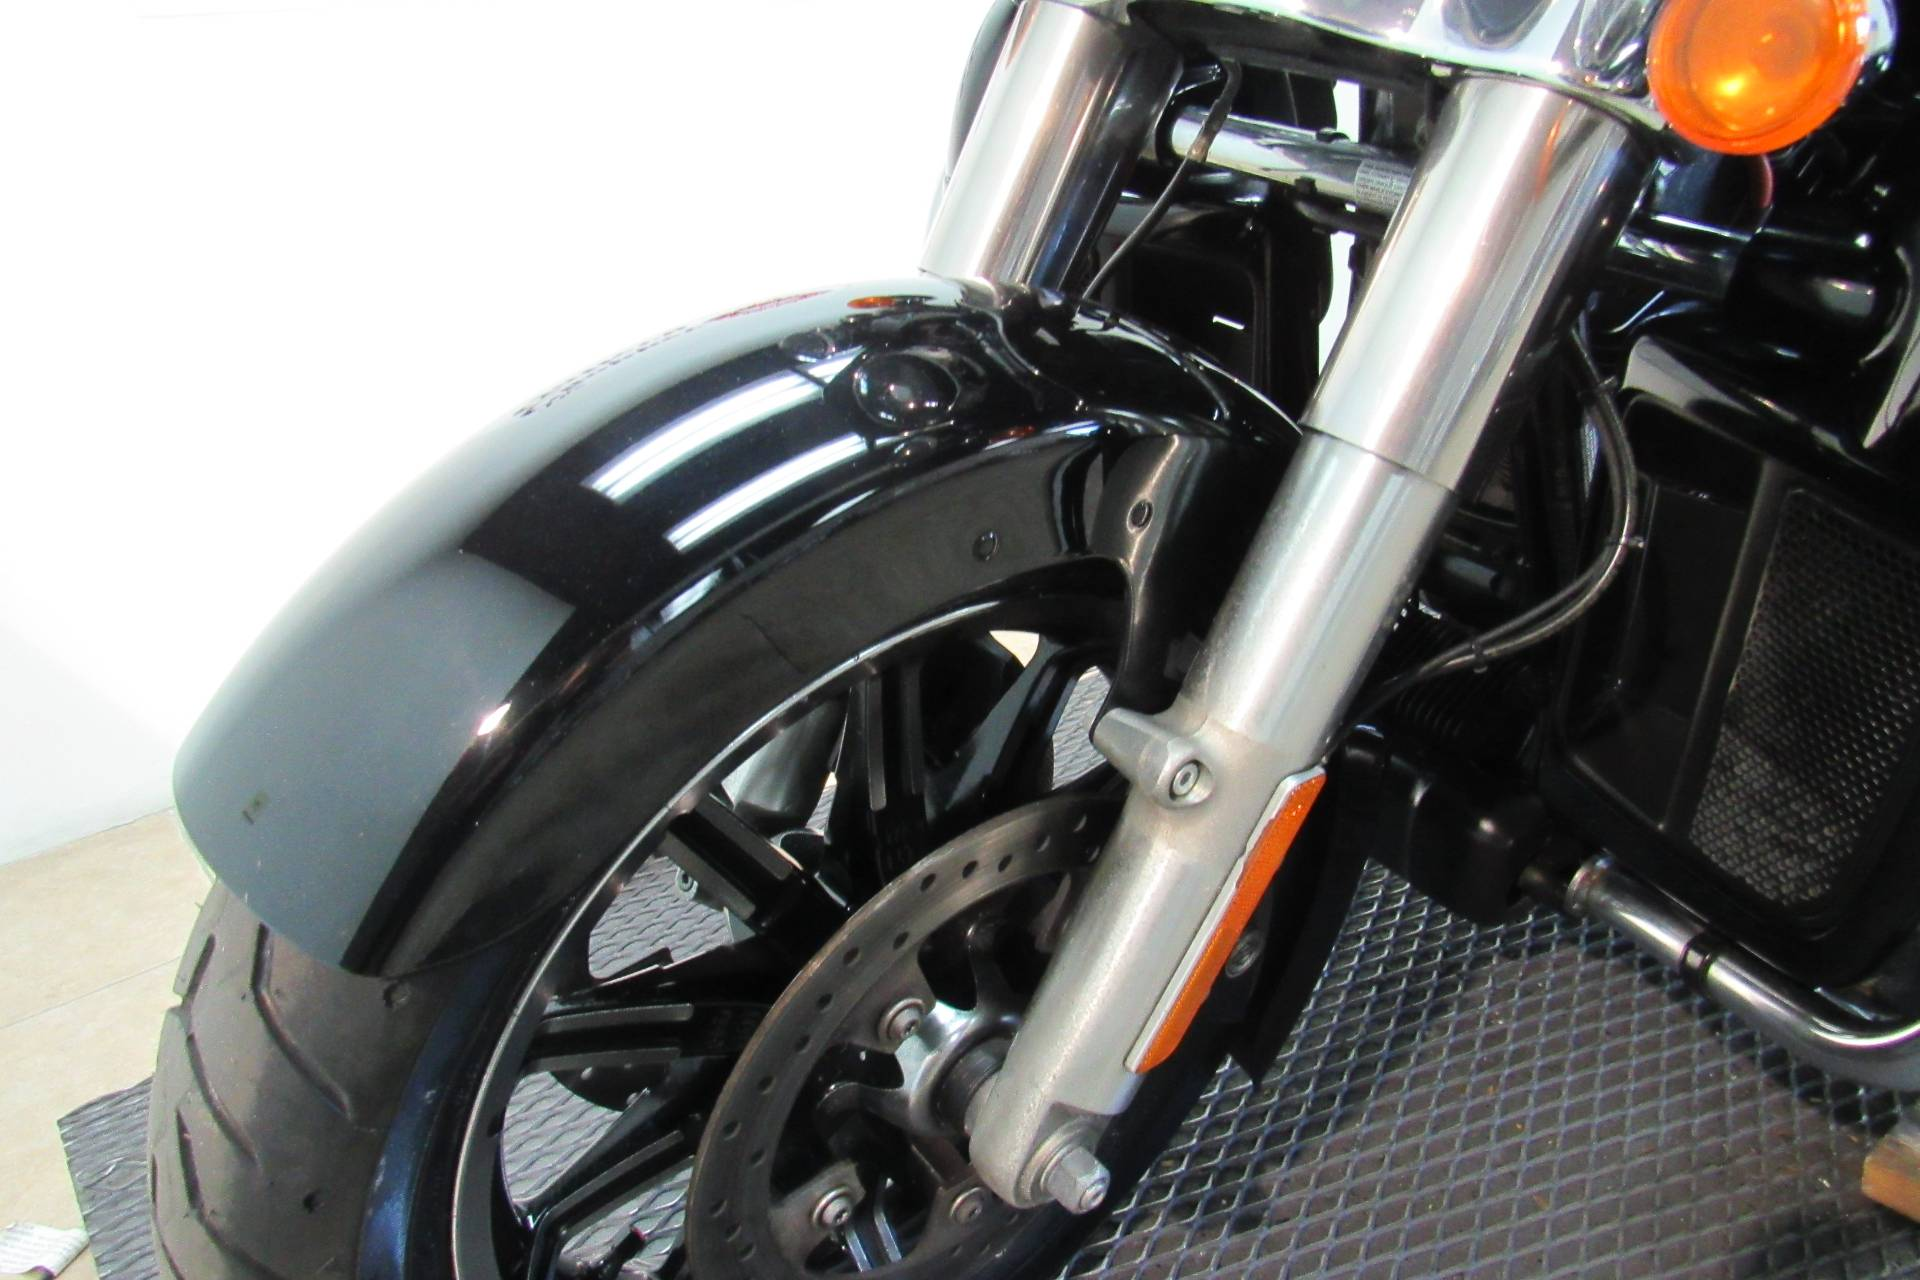 2014 Harley-Davidson Ultra Limited in Temecula, California - Photo 40